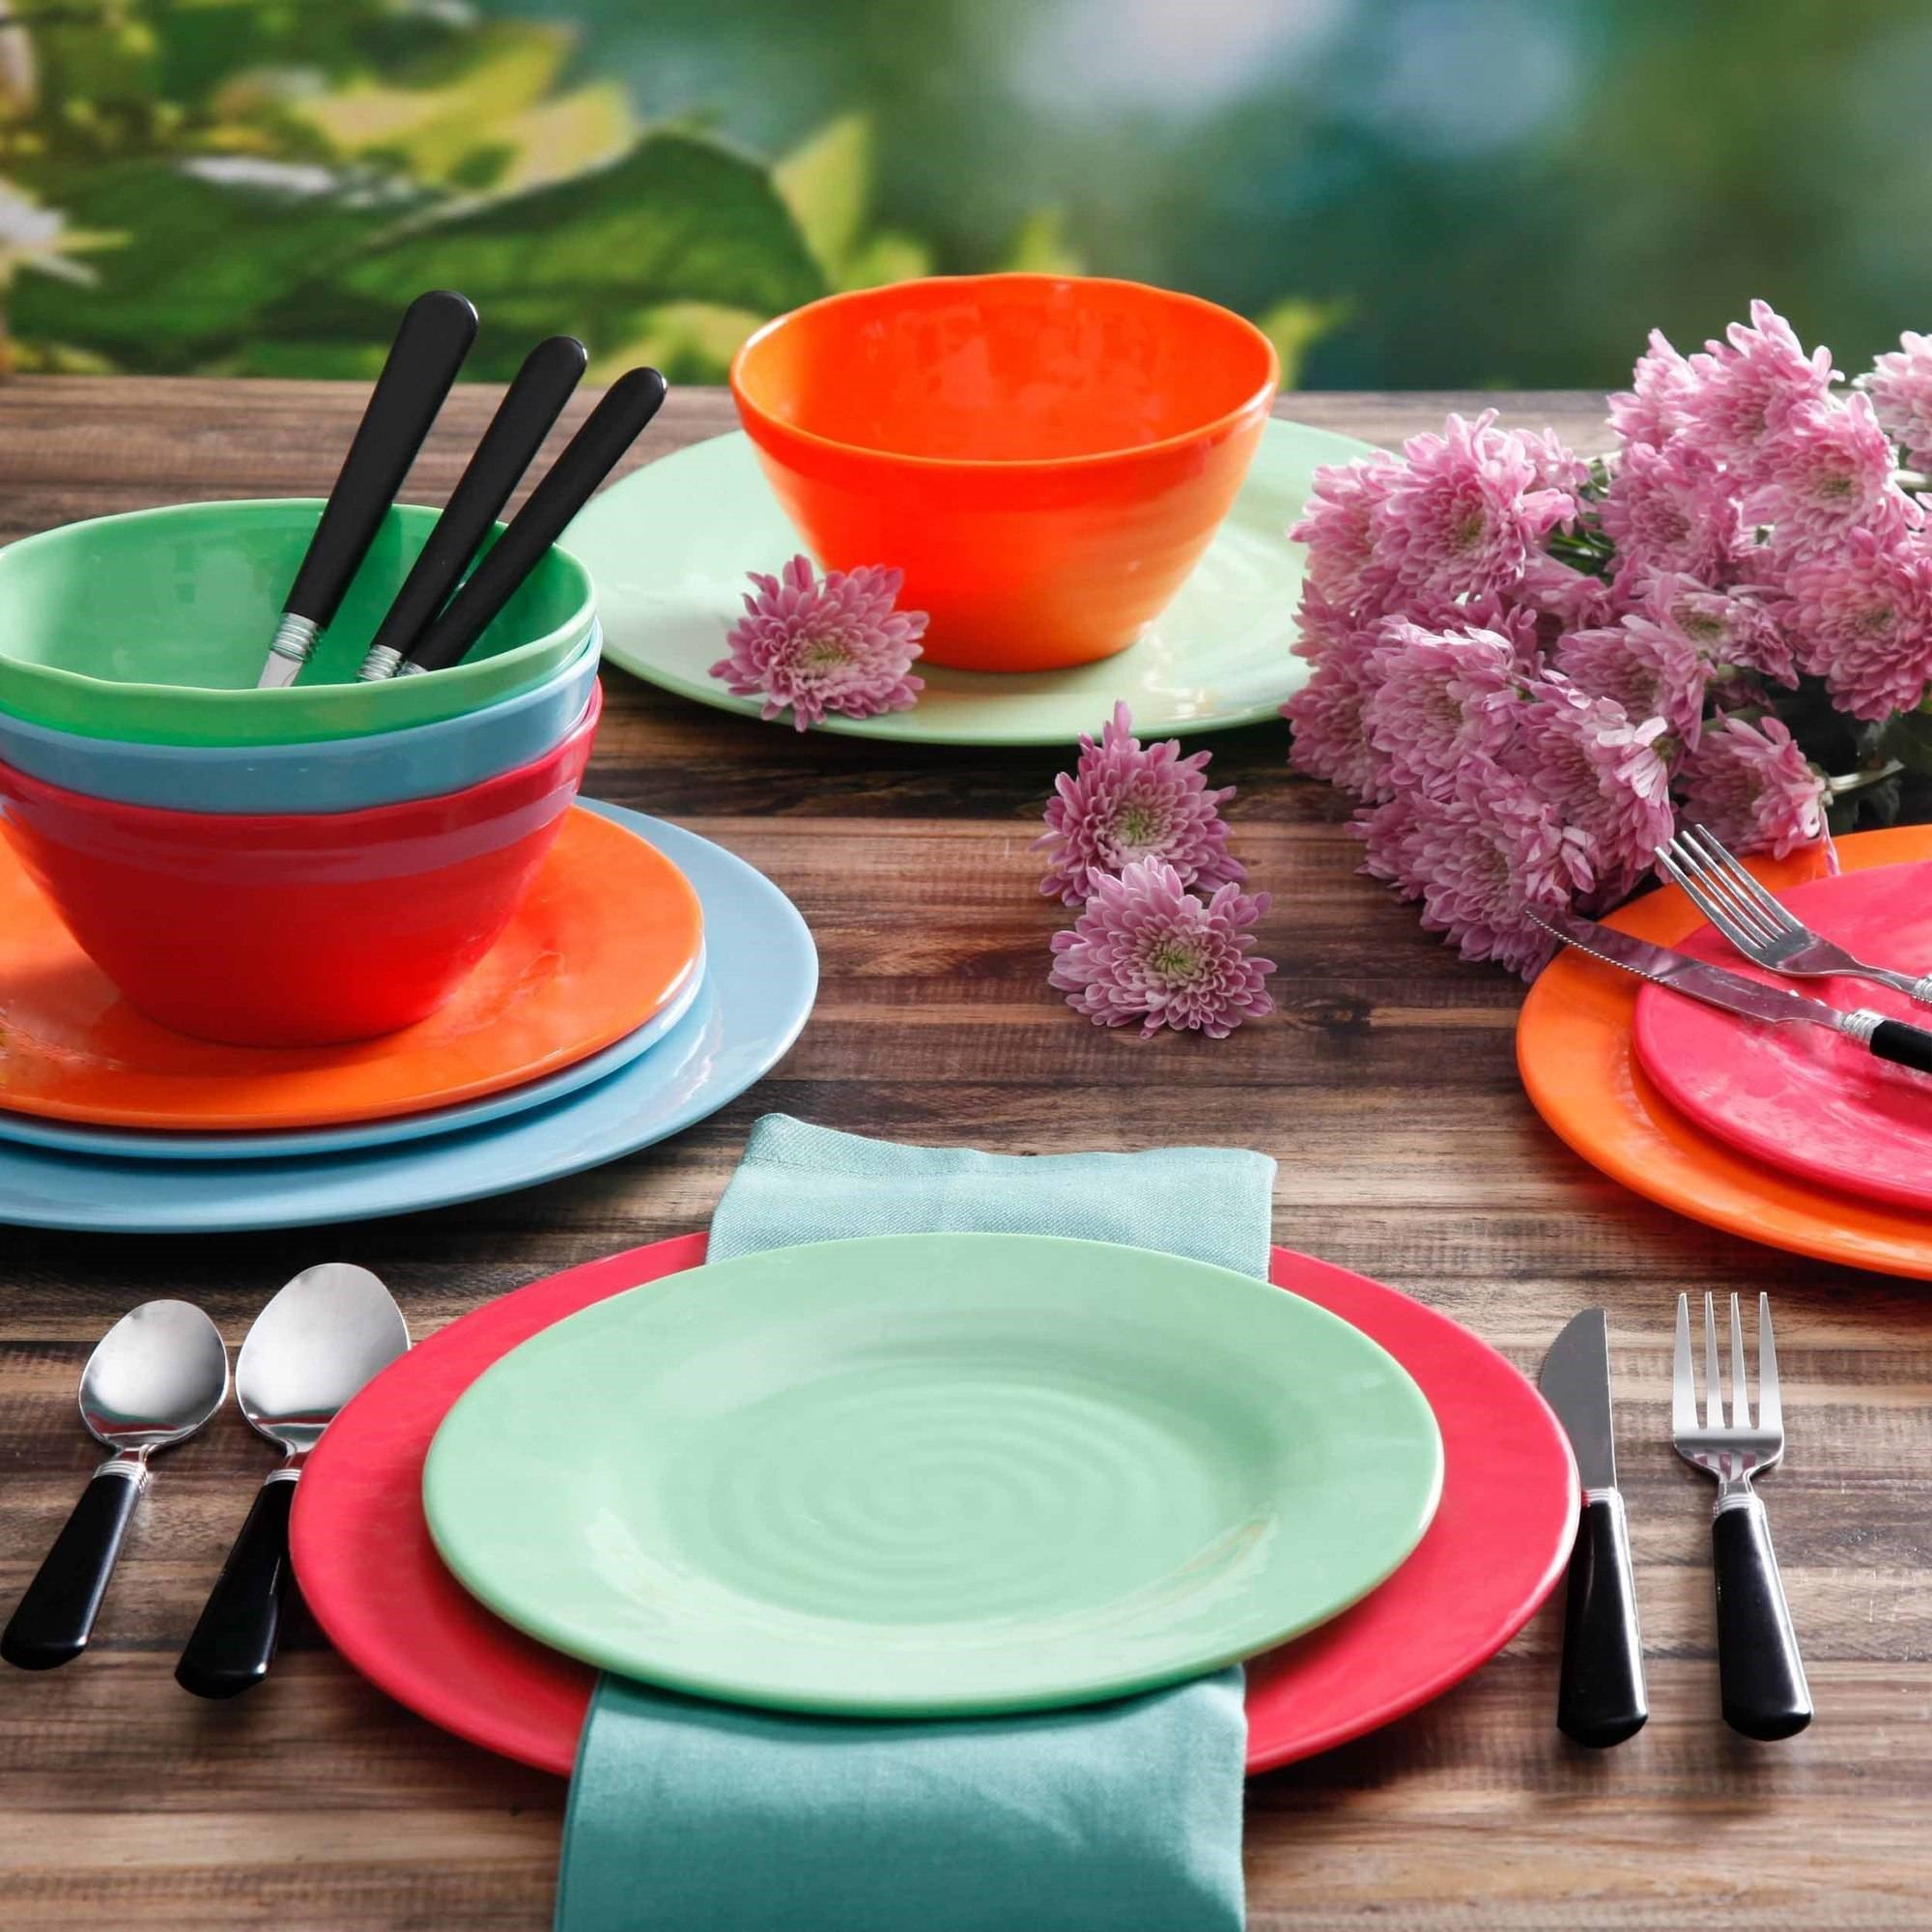 Gibson Home Brela 12-Piece Melamine Dinnerware Set & Outdoor Tableware u0026 Picnic - Walmart.com